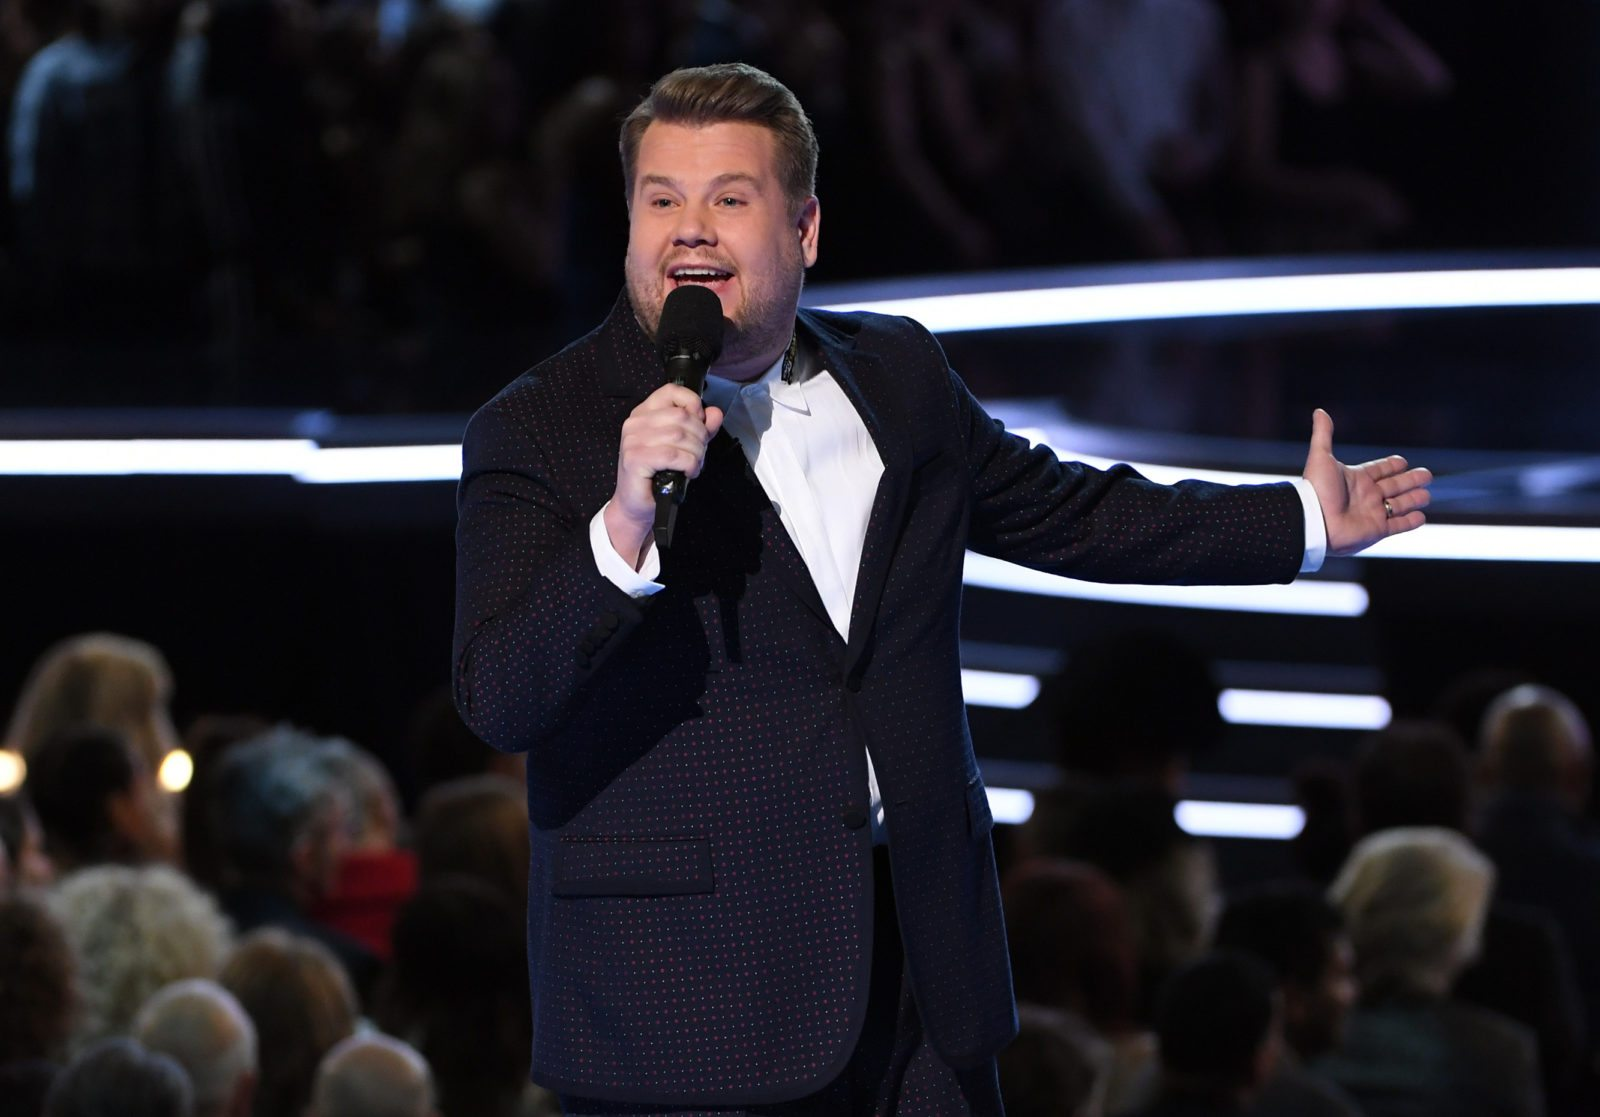 NEW YORK, NY - JANUARY 28: Host James Corden speaks onstage during the 60th Annual GRAMMY Awards at Madison Square Garden on January 28, 2018 in New York City. (Photo by Kevin Winter/Getty Images for NARAS)